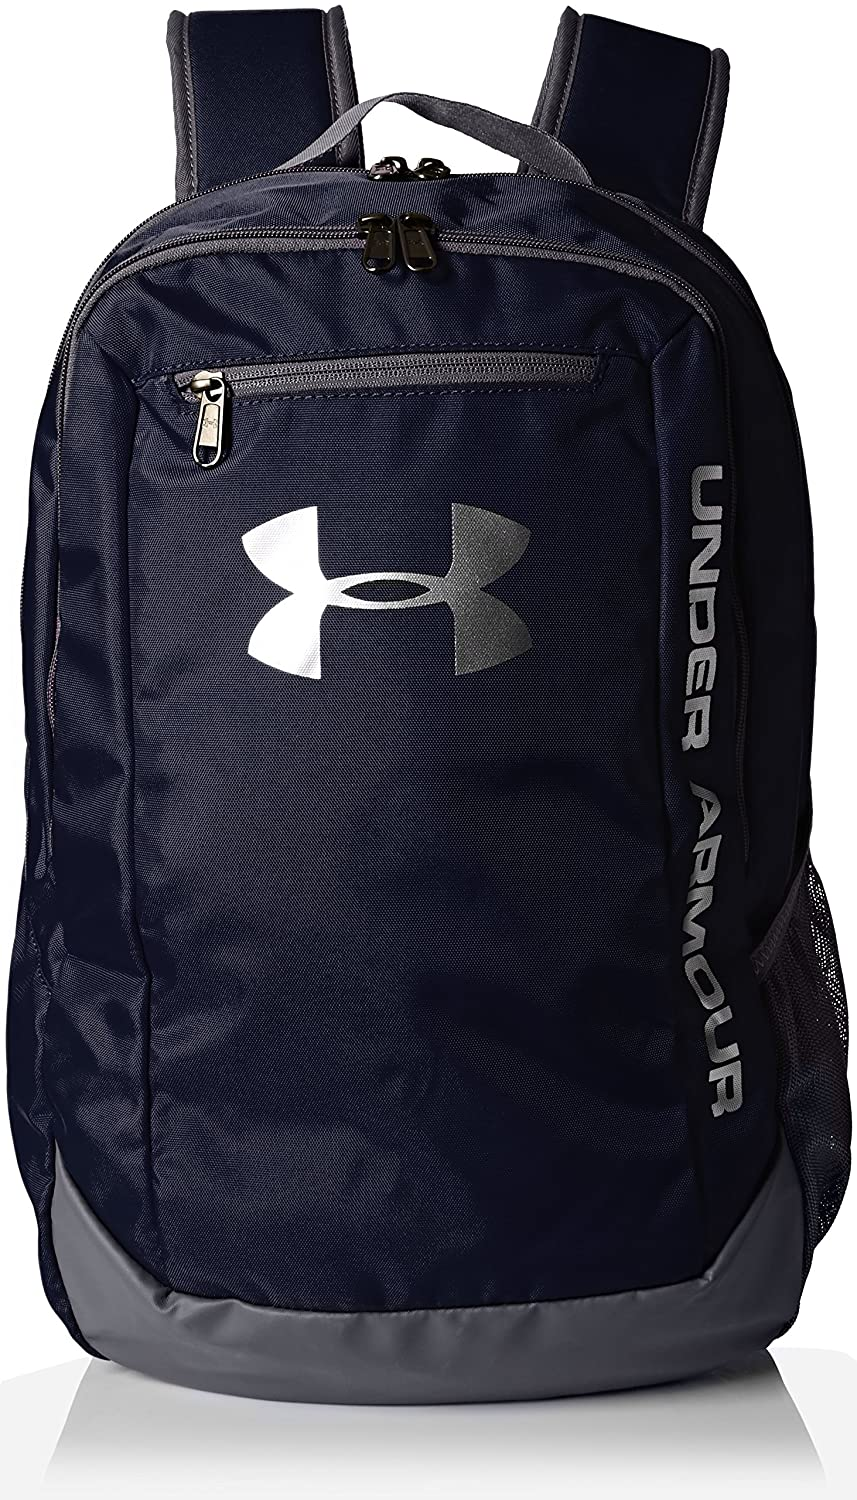 6e804d422c9 Amazon.com: Under Armour Hustle LDWR Backpack One Size Black Black Silver:  Arts, Crafts & Sewing